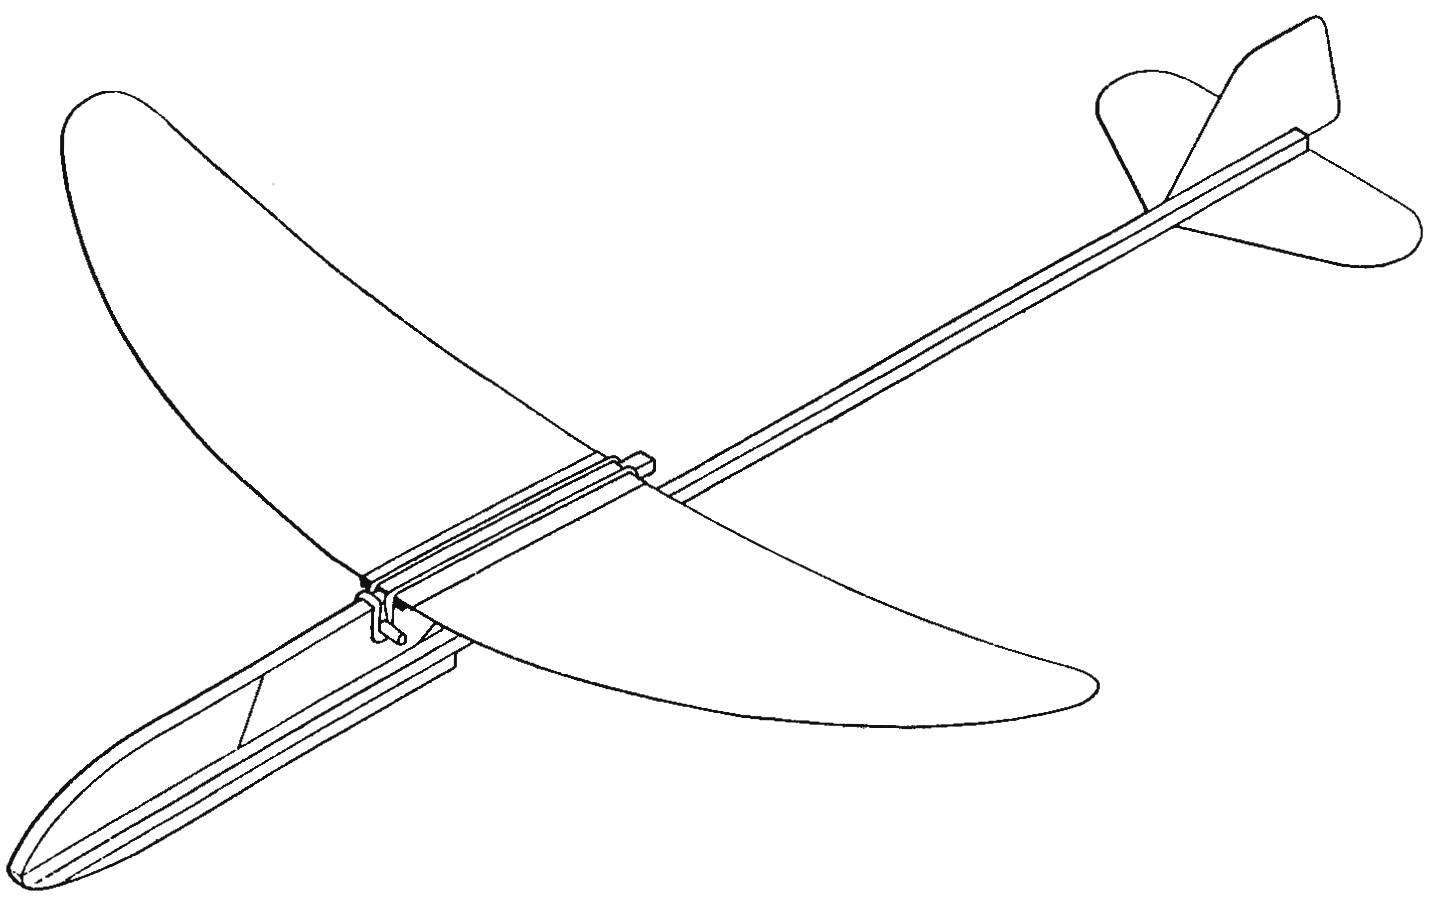 Model of throwing a glider type